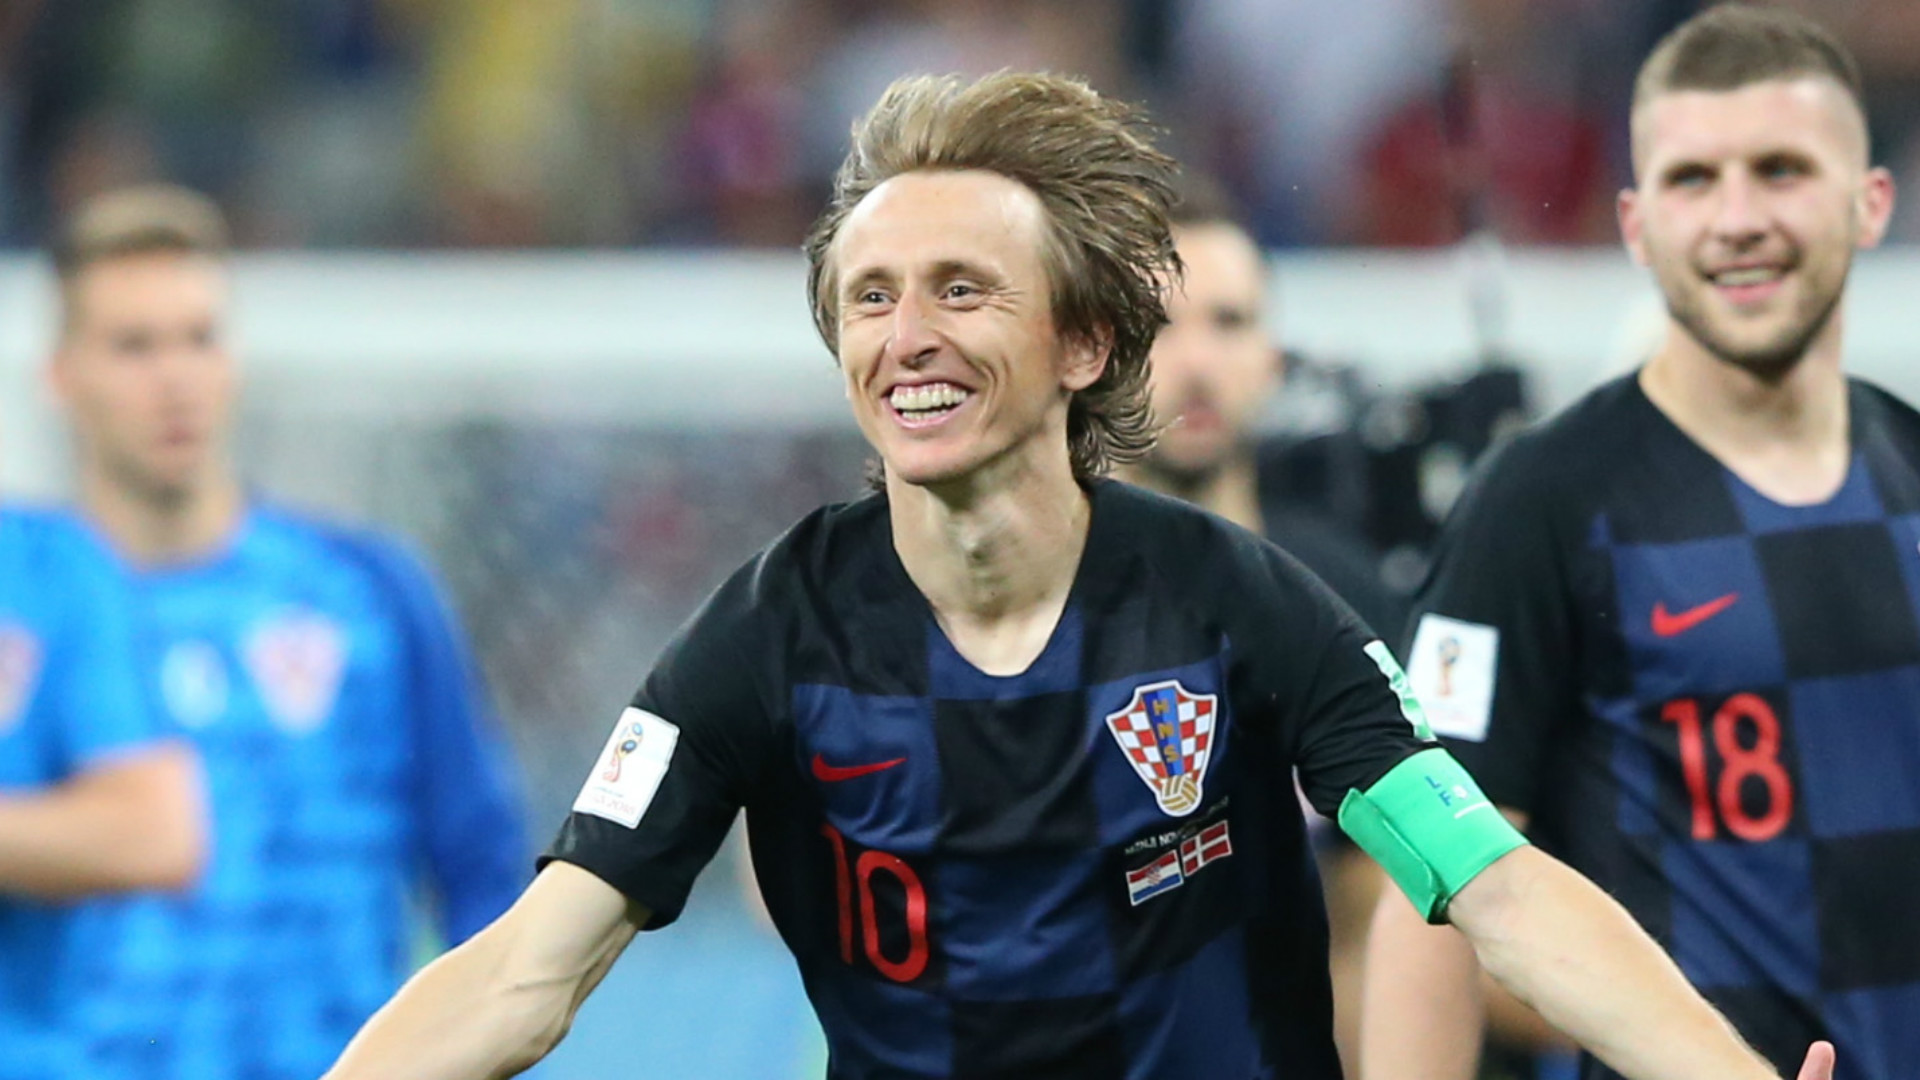 They should be more humble and respectful - Modric hits back at media